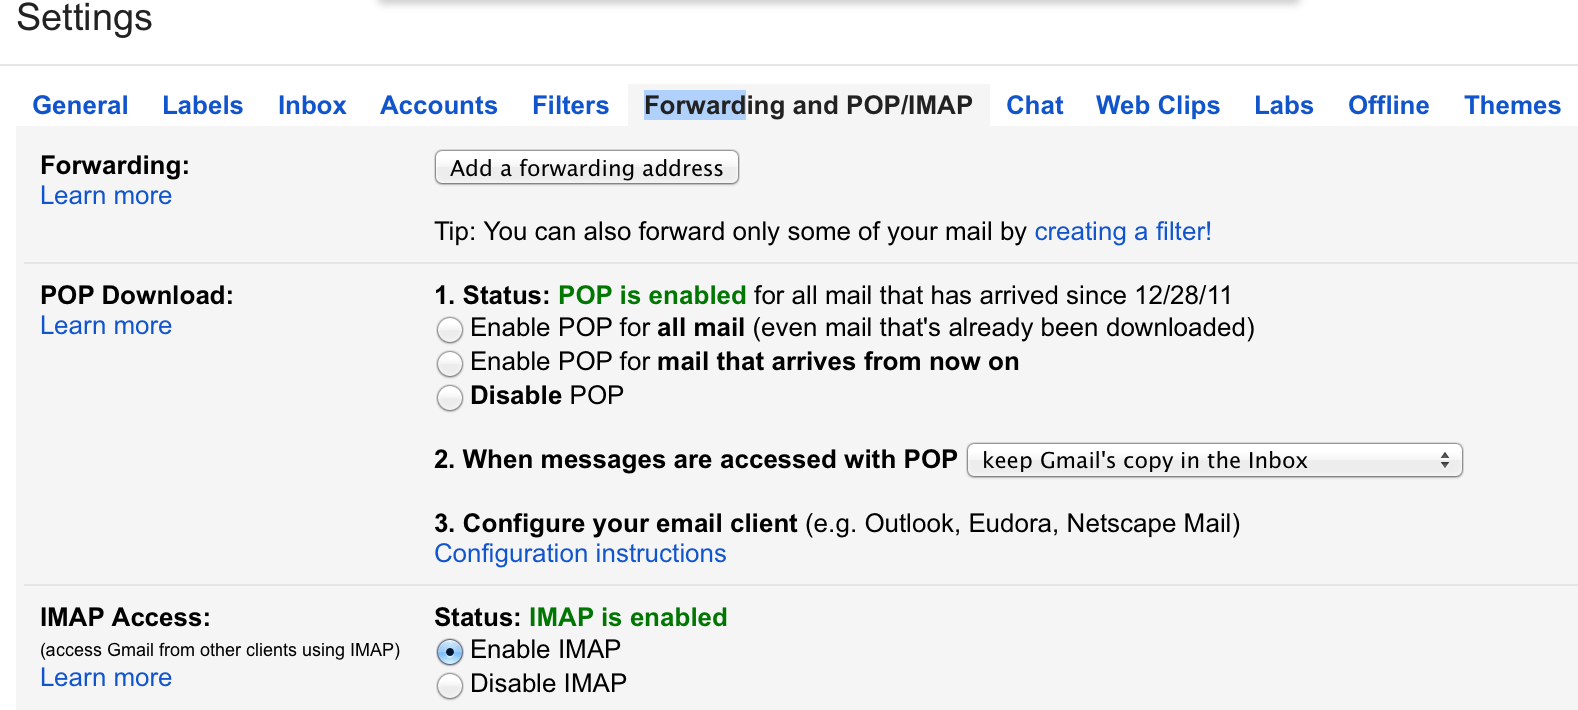 Themes in gmail settings - Enable Imap In Your Gmail Settings